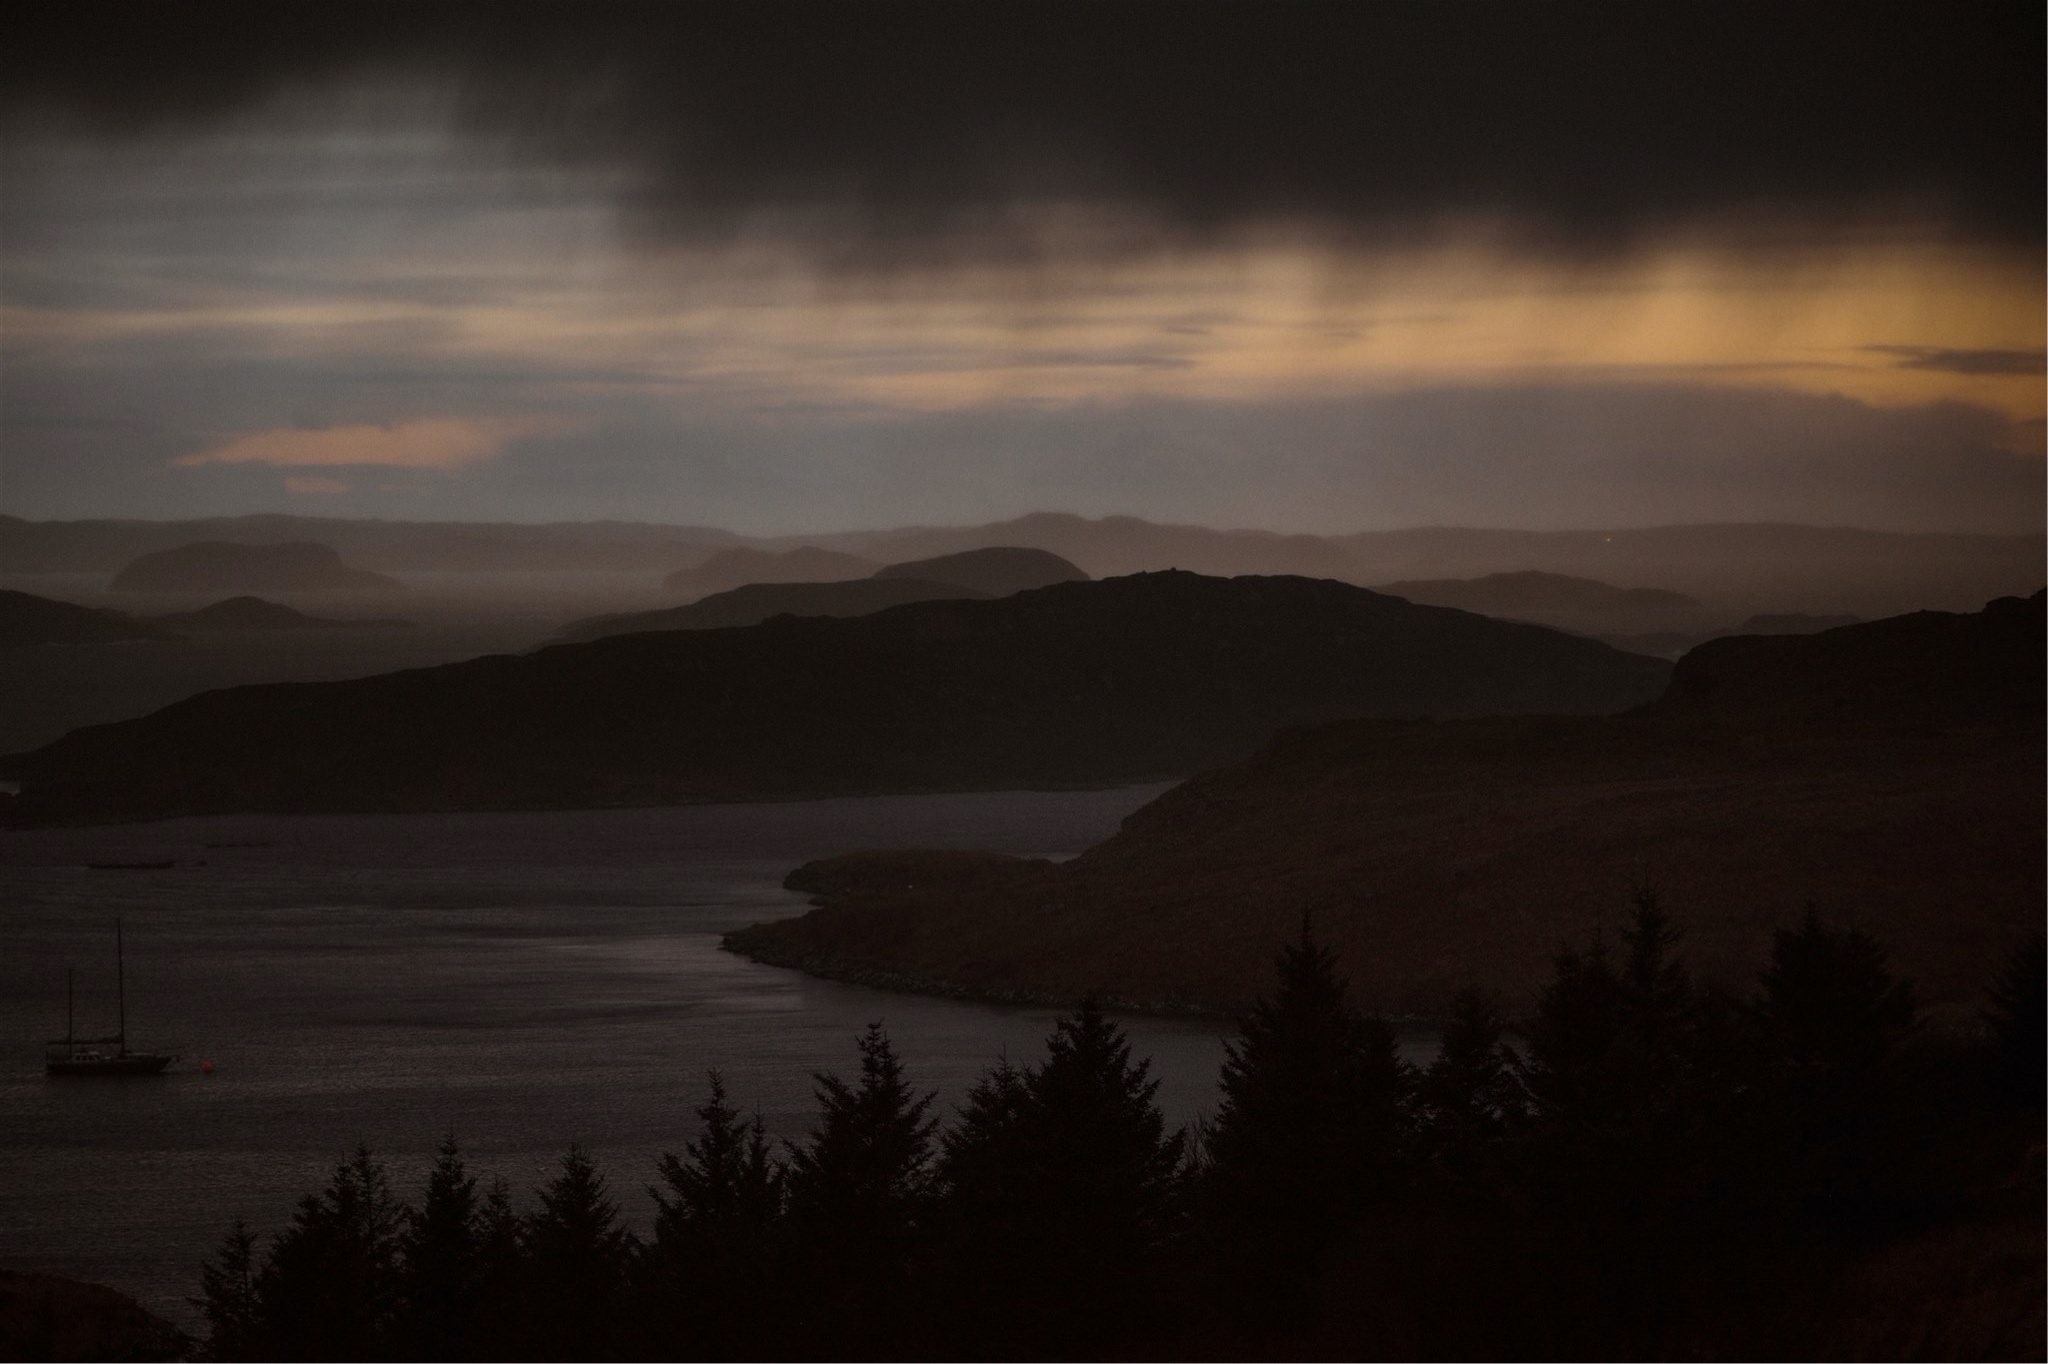 Stormy sunset over the sea in Assynt, Scotland - on the North Coast 500